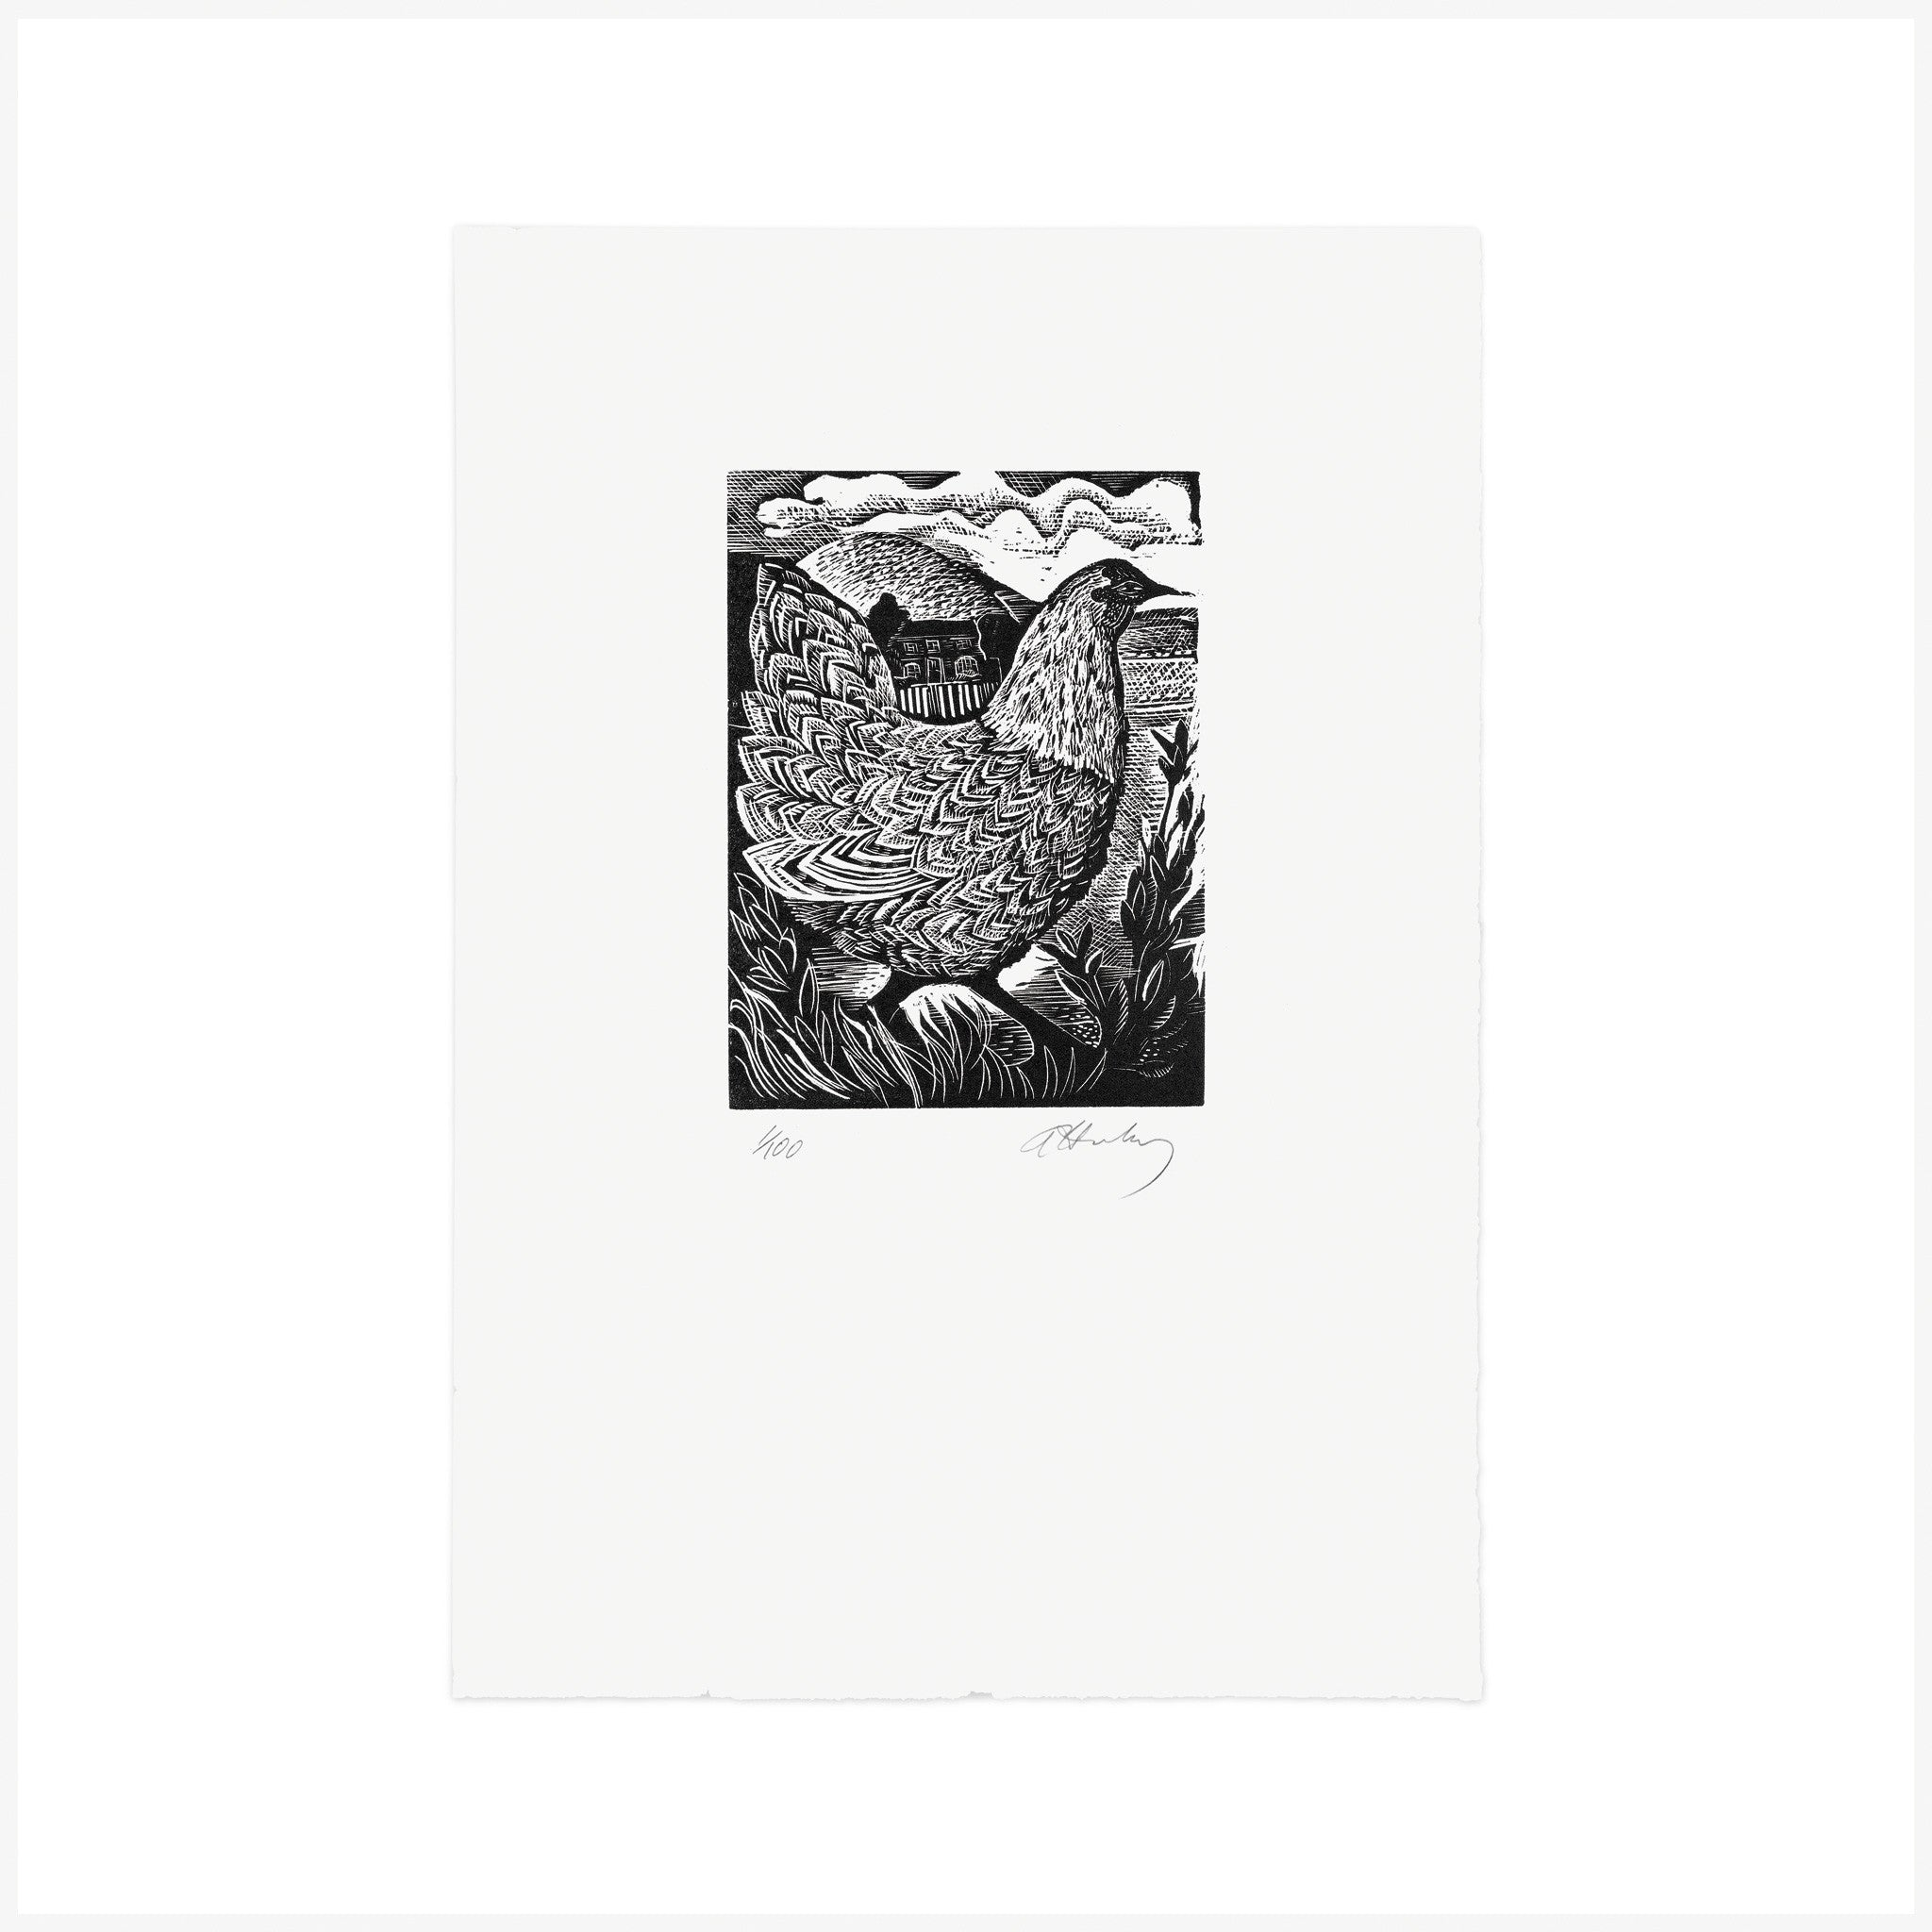 C is for Chicken – Wood Engraving - Angela Harding